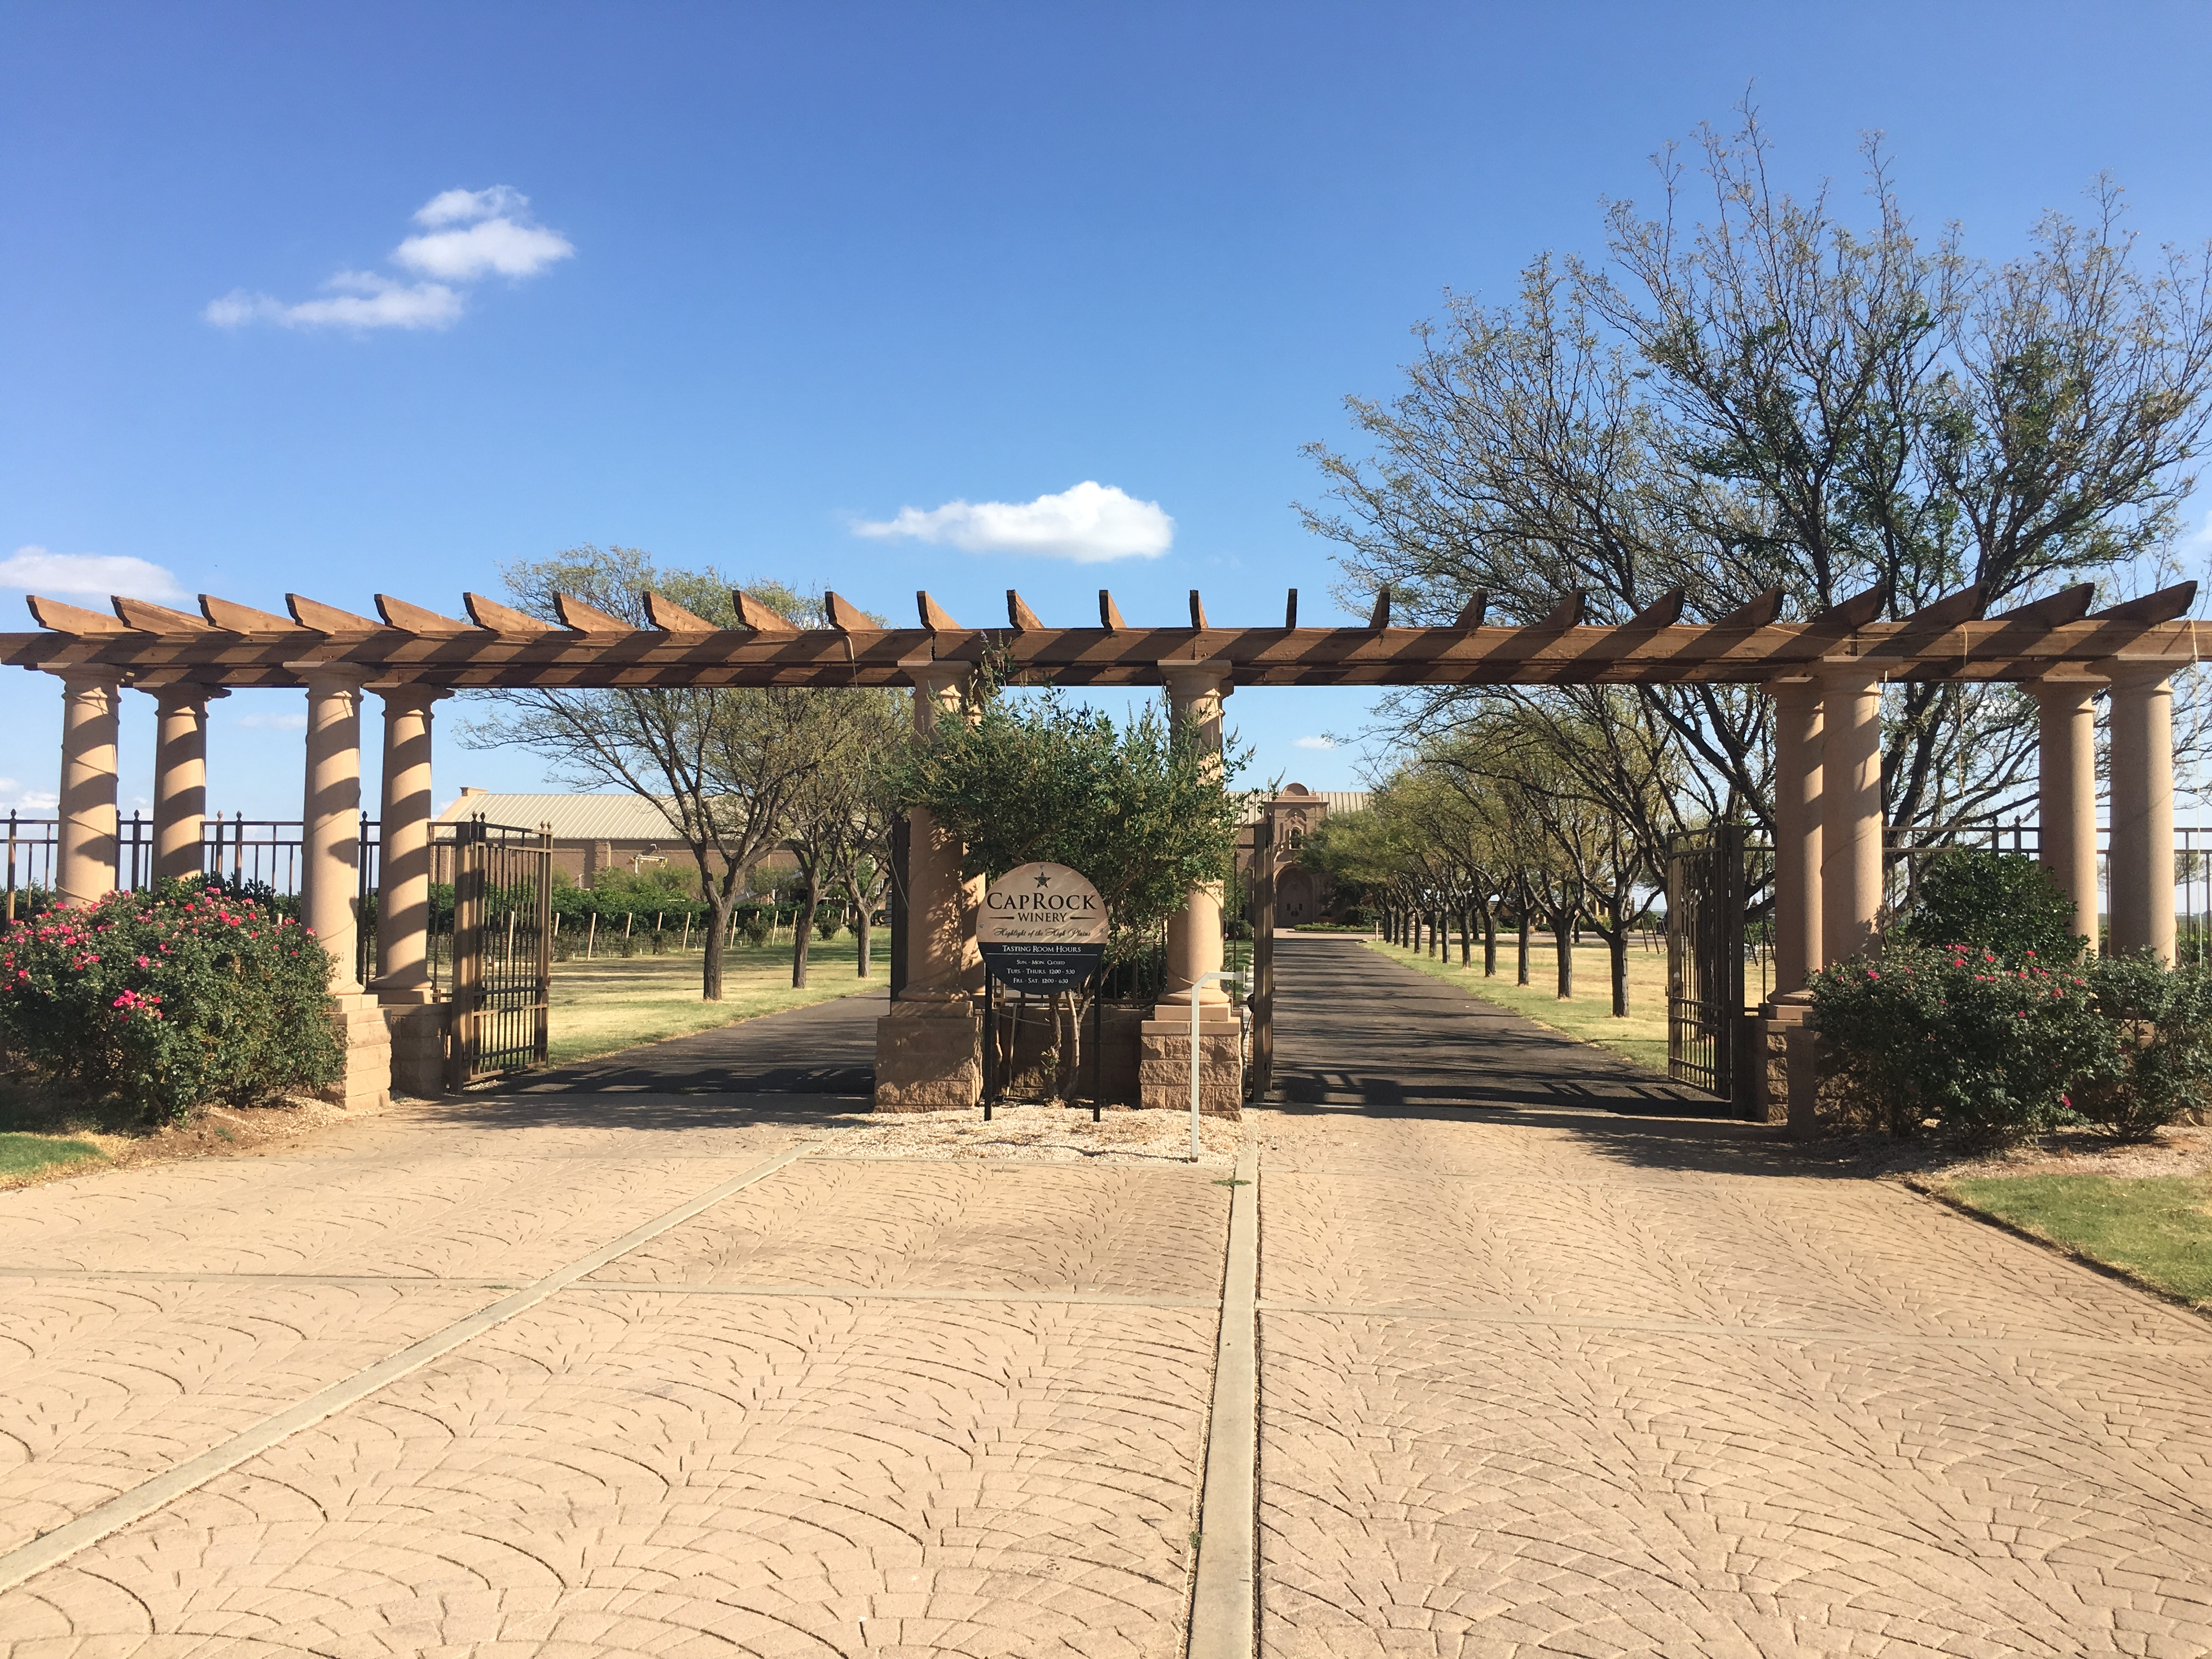 Entranceway To CapRock Winery